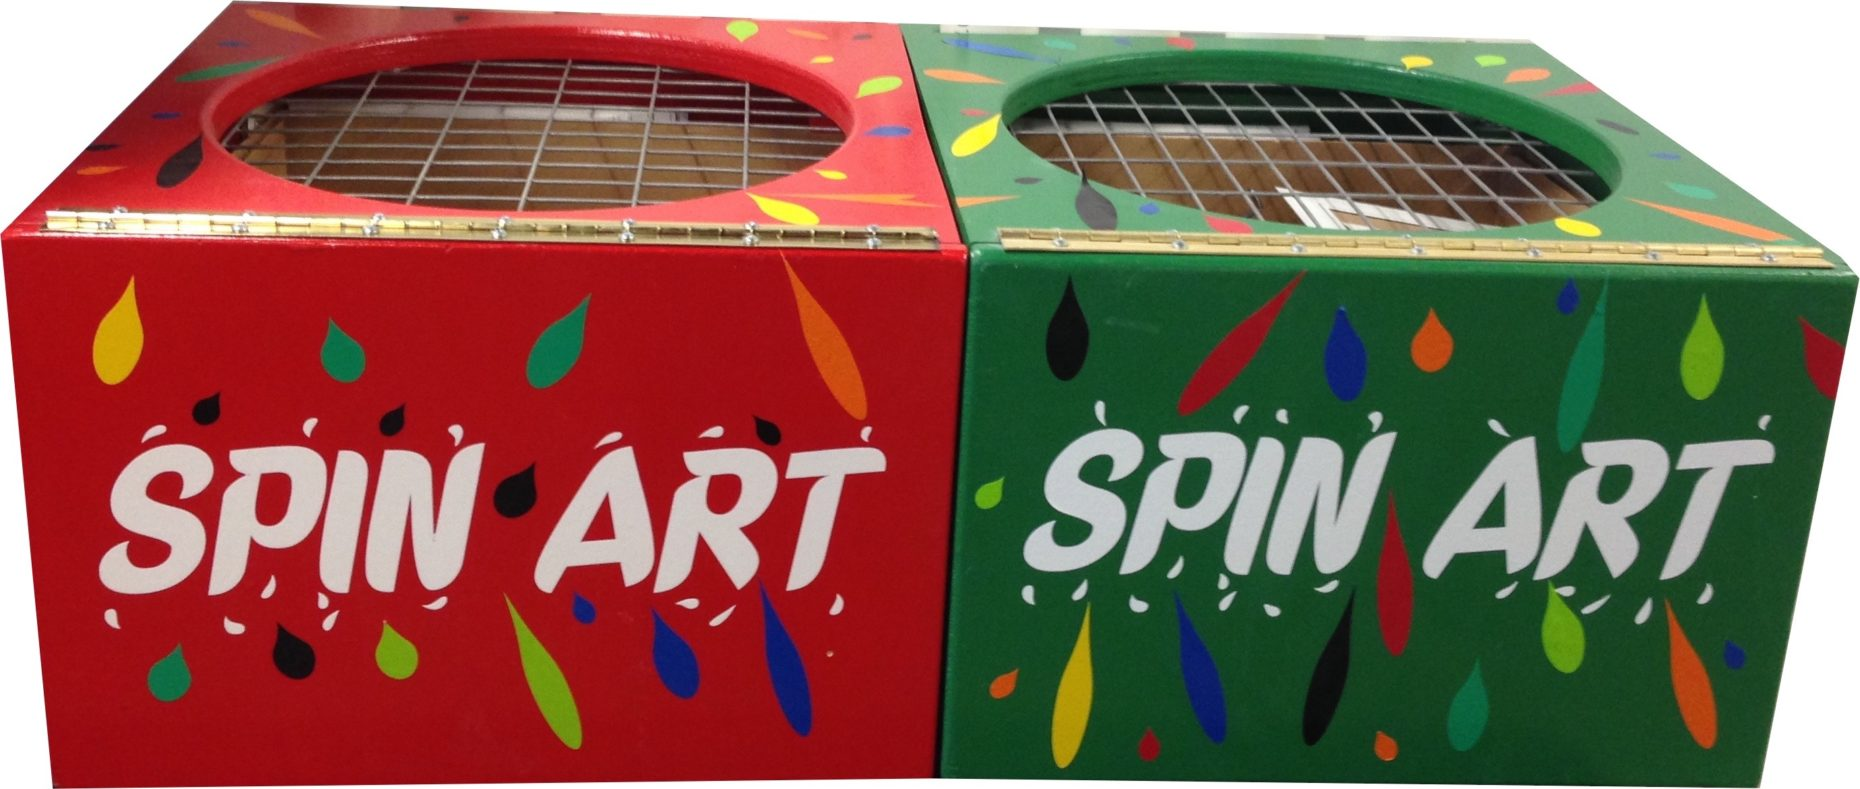 Spin art machines